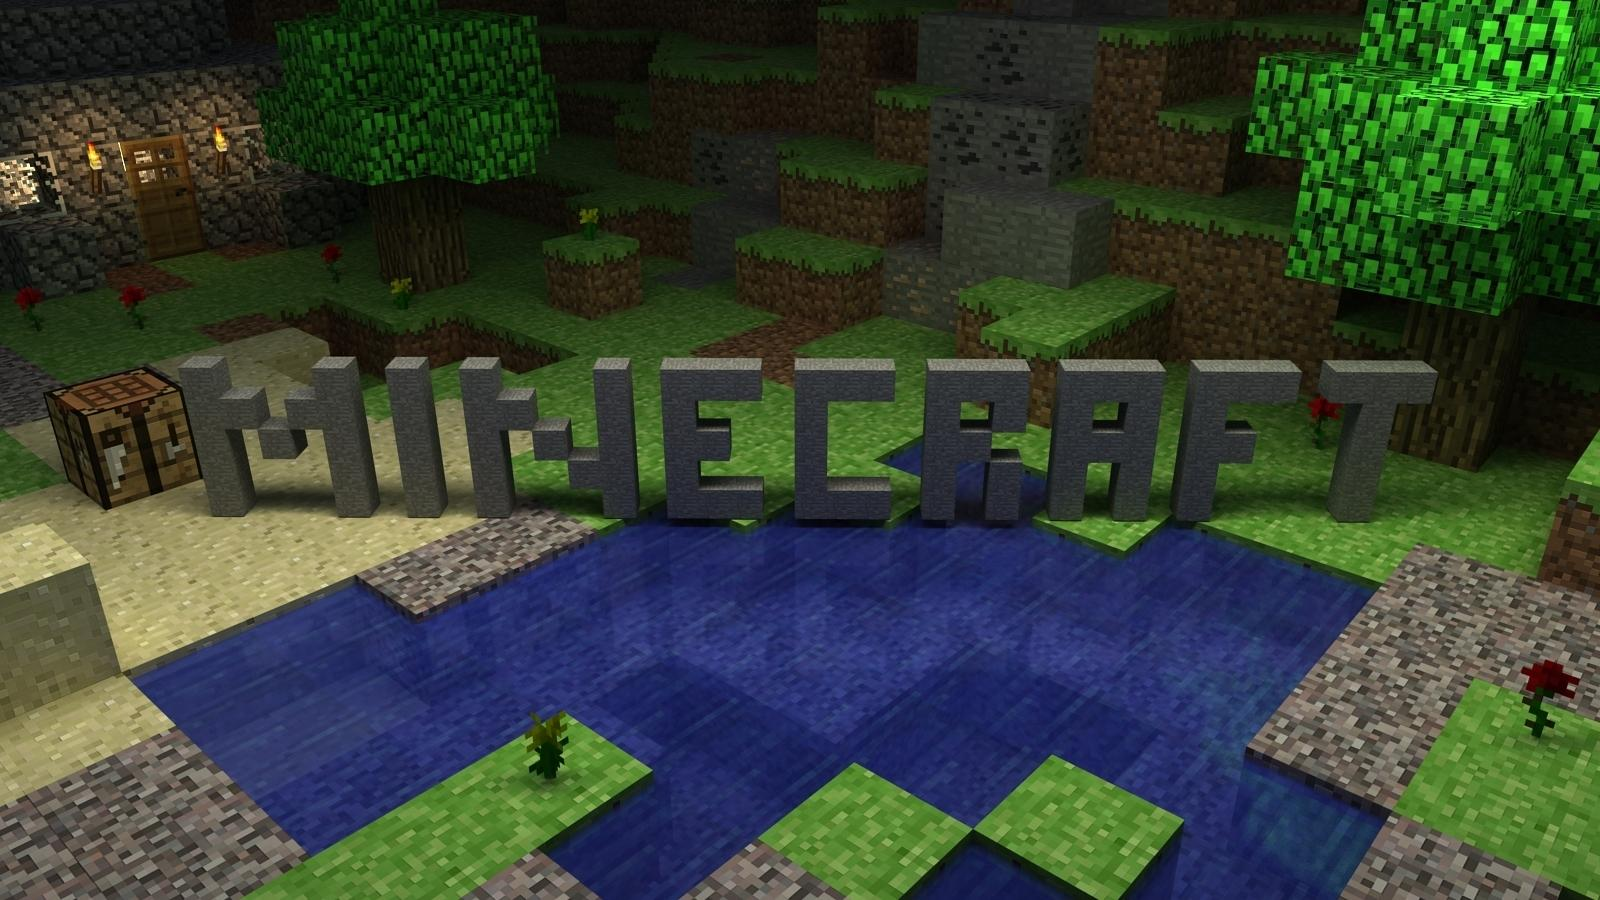 Top Wallpaper Minecraft Mac - Download-Minecraft-1-7-7-for-Mac-OS-X-Windows-Linux-436830-2  Graphic_668210.jpg